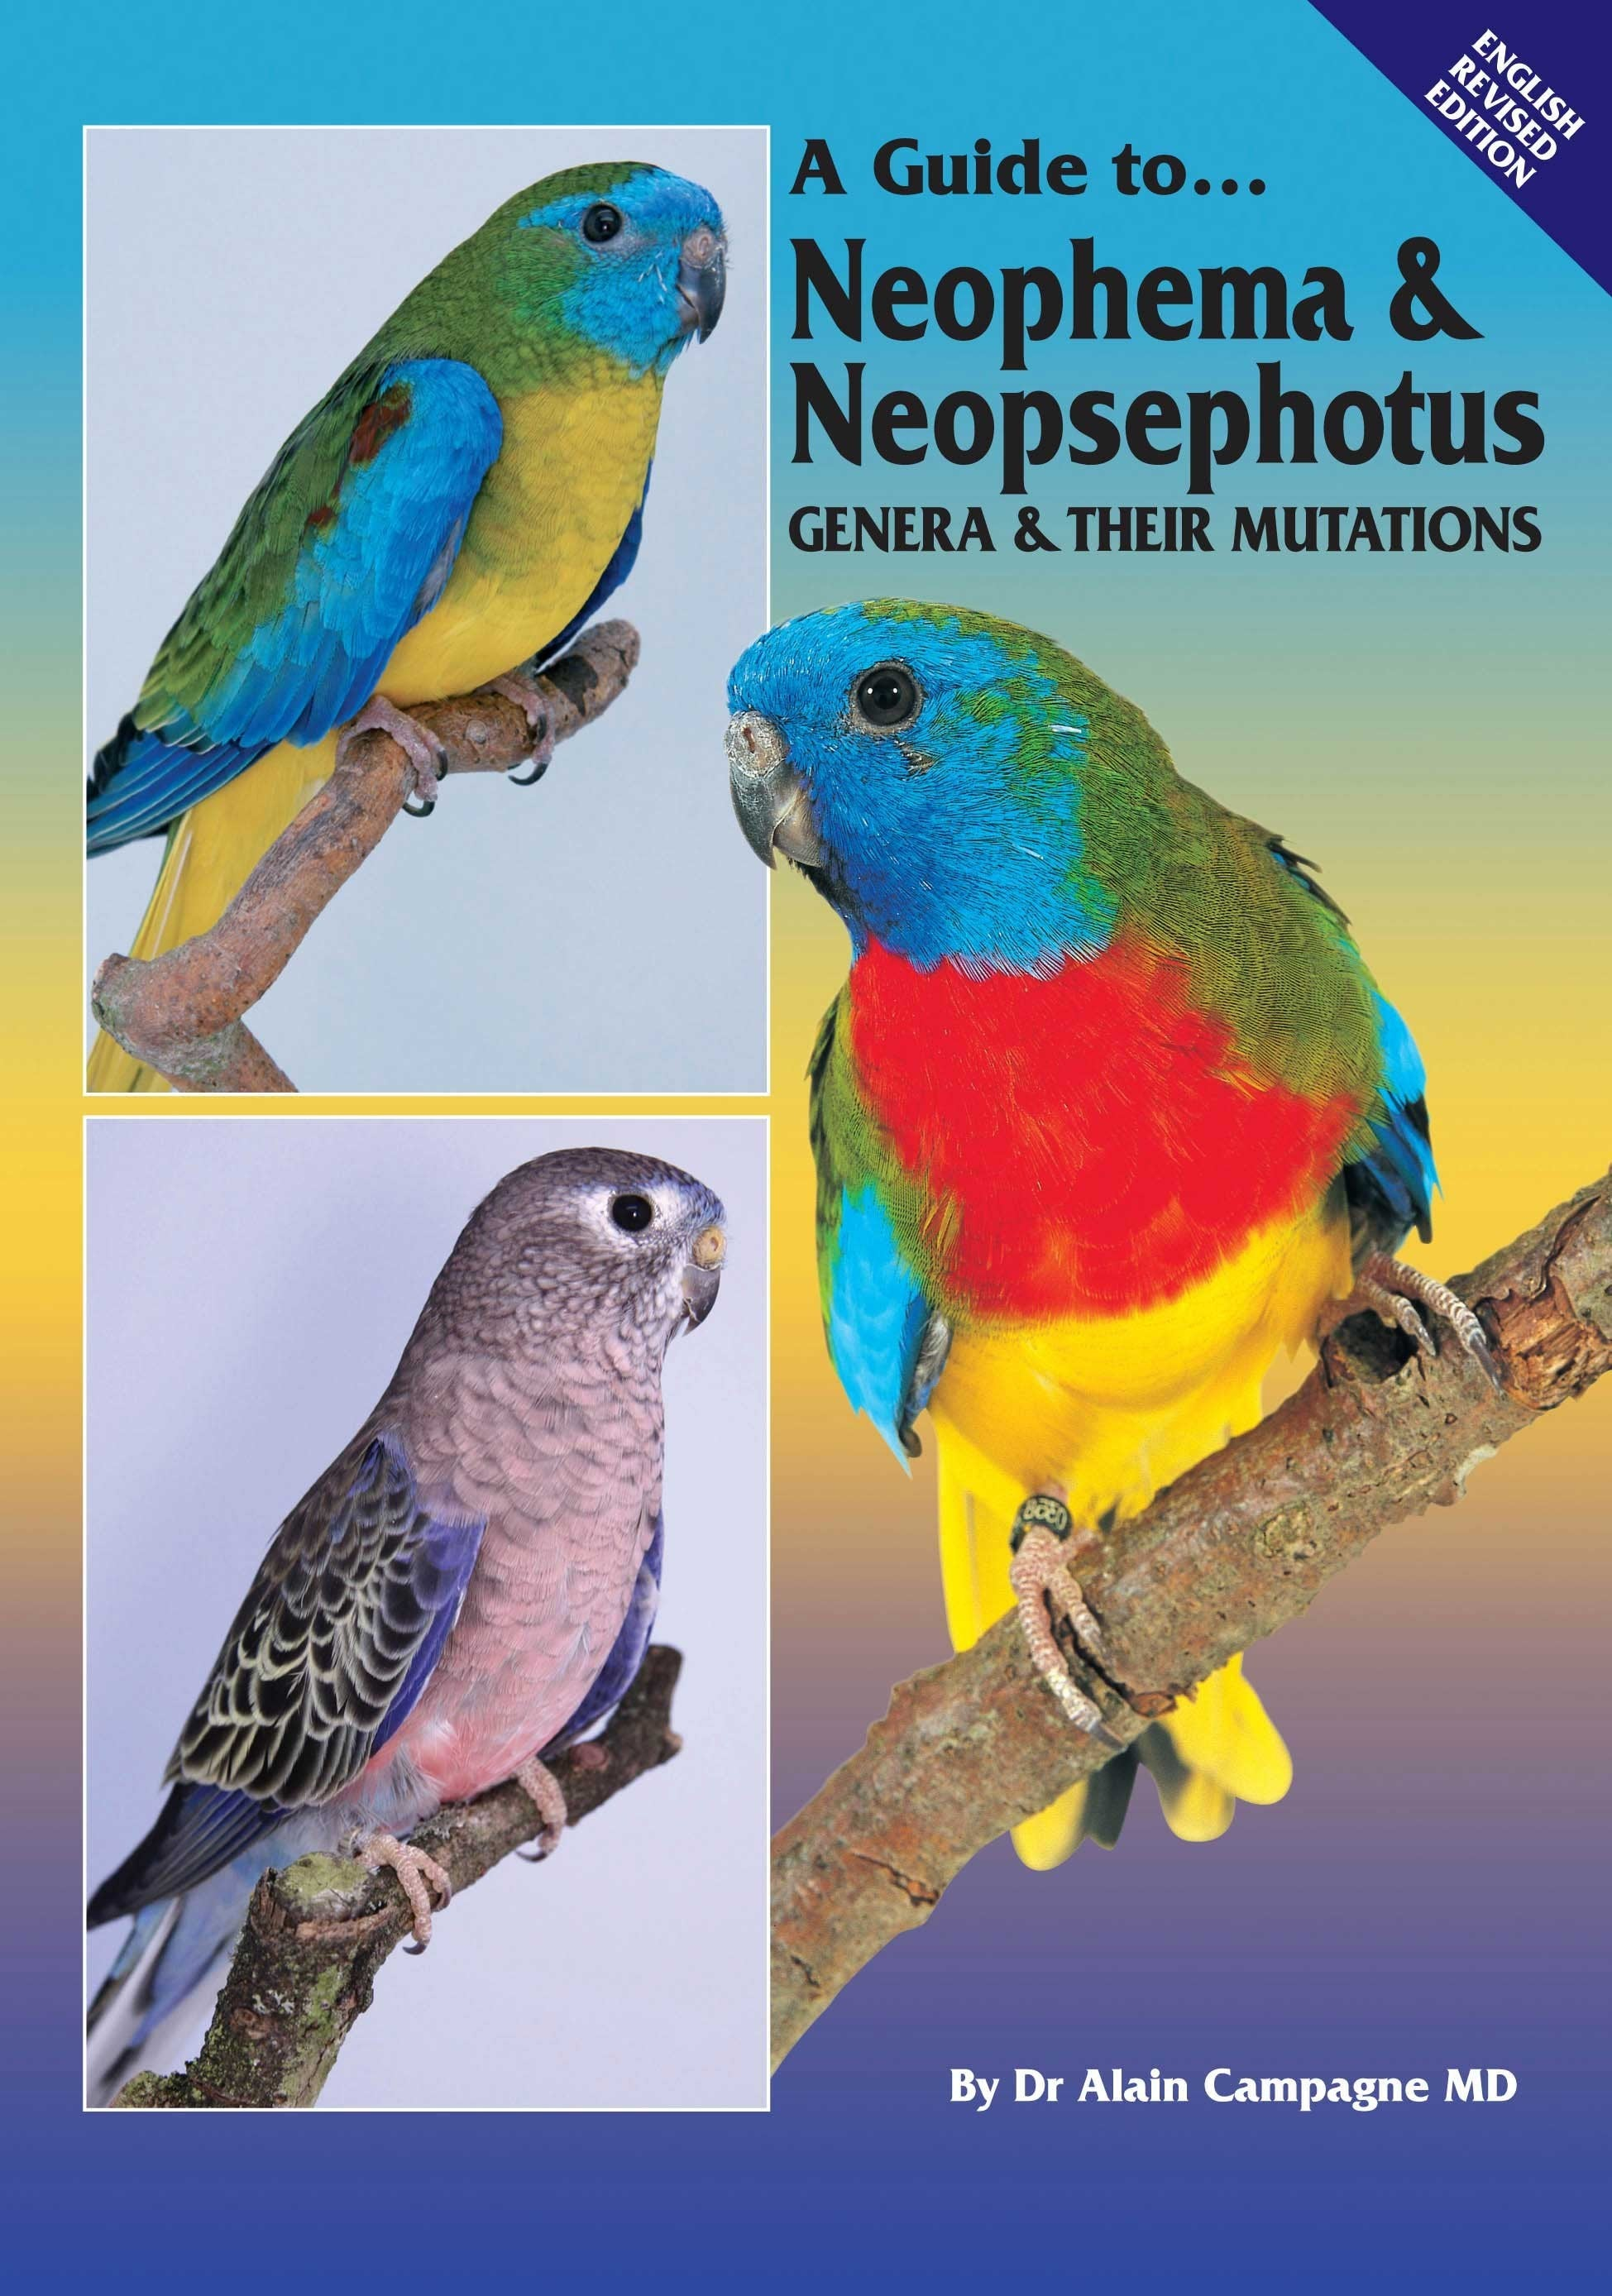 A Guide to Neophema and Neopsephotus Genera (English Revised Edition) Hard Cover